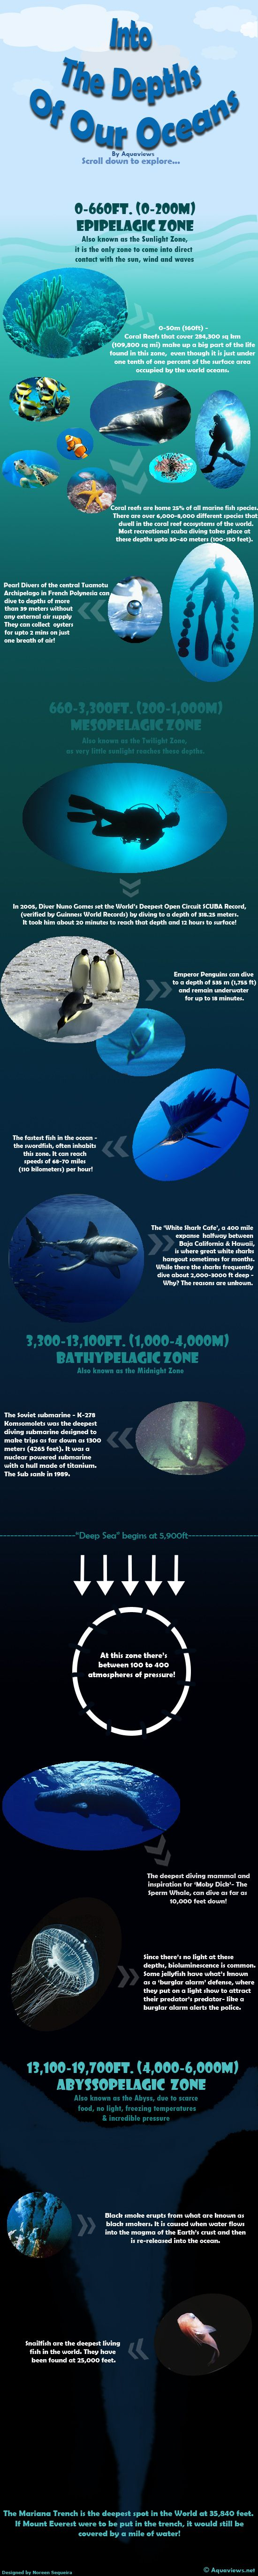 Into The Depths Of Our Oceans-Layers Of The Ocean Revealed #Infographic